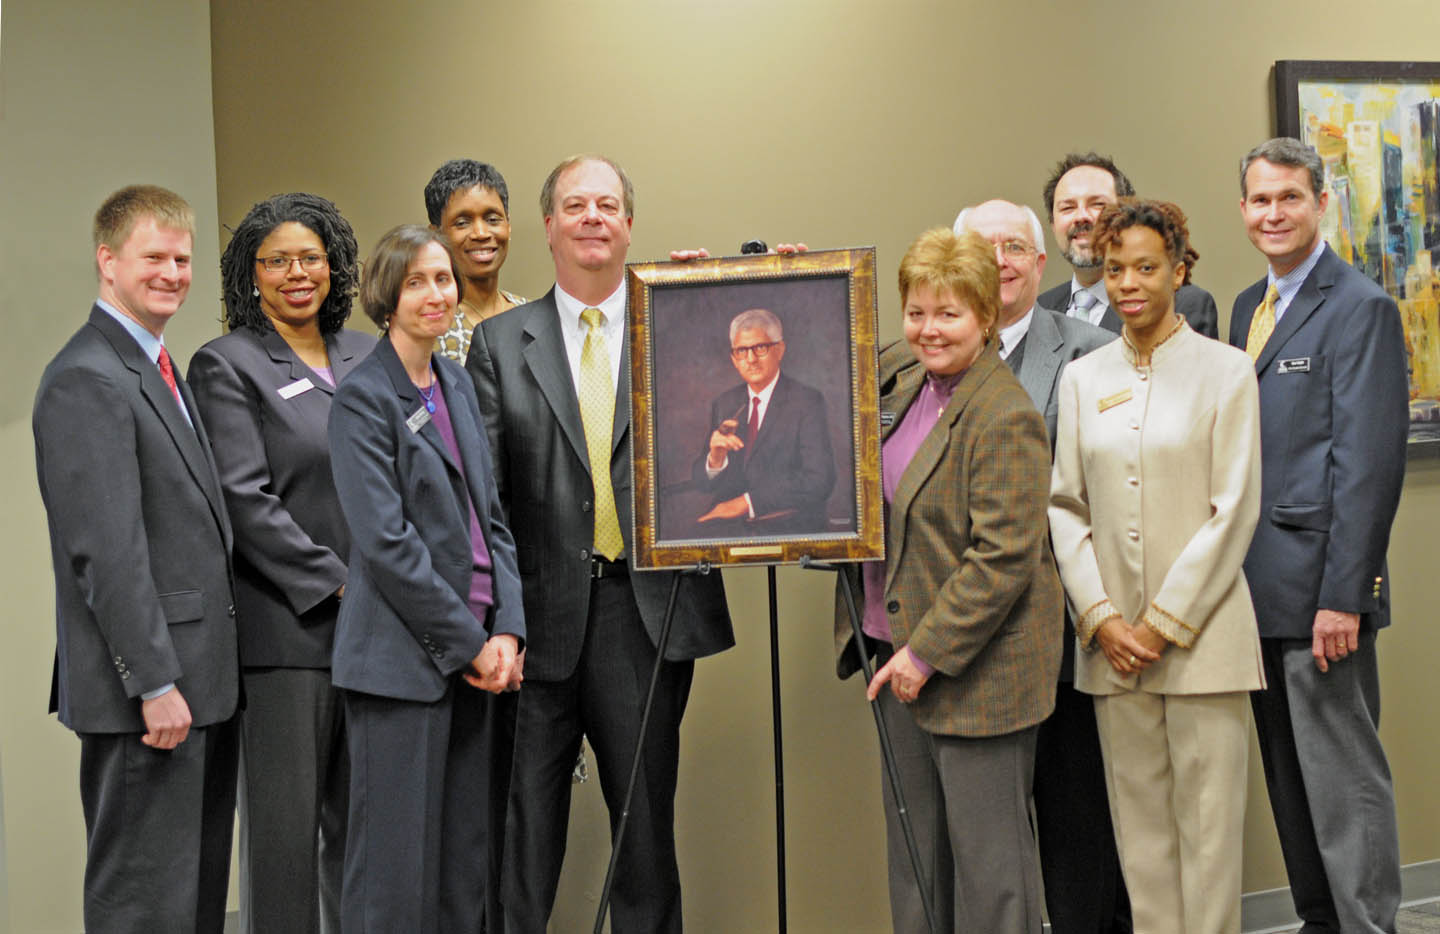 "Click to enlarge,  Central Carolina Community College's President's Council gathered for the unveiling of a portrait of Dr. W. Dallas Herring at the college's Lee County Campus. The North Carolina Community College System and the 58 community colleges across the state recognized March 6 as ""Dallas Herring Day."" The portrait, a gift from the NCCCS, commemorates the  system's 50th anniversary and Herring's vision and tireless work in promoting community colleges as institutions of comprehensive education. Pictured (from left) are Dr. Phillip Price, vice president for Administrative Services; Dr. Pam Senegal, vice president for Economic and Community Development; Celia Hurley,  vice president for Instructional Advancement; Stacey Carter-Coley, Esq., executive director of Human Resources and Ethics Liaison; Dr. Bud Marchant, president; Dr. Lisa Chapman, executive vice president for Instruction; Bill Tyson, Harnett County provost; William Messersmith (back), associate director of Human Resources; Nicole Brown, Human Resources instructor; and Ken Hoyle, vice president of Student Services."